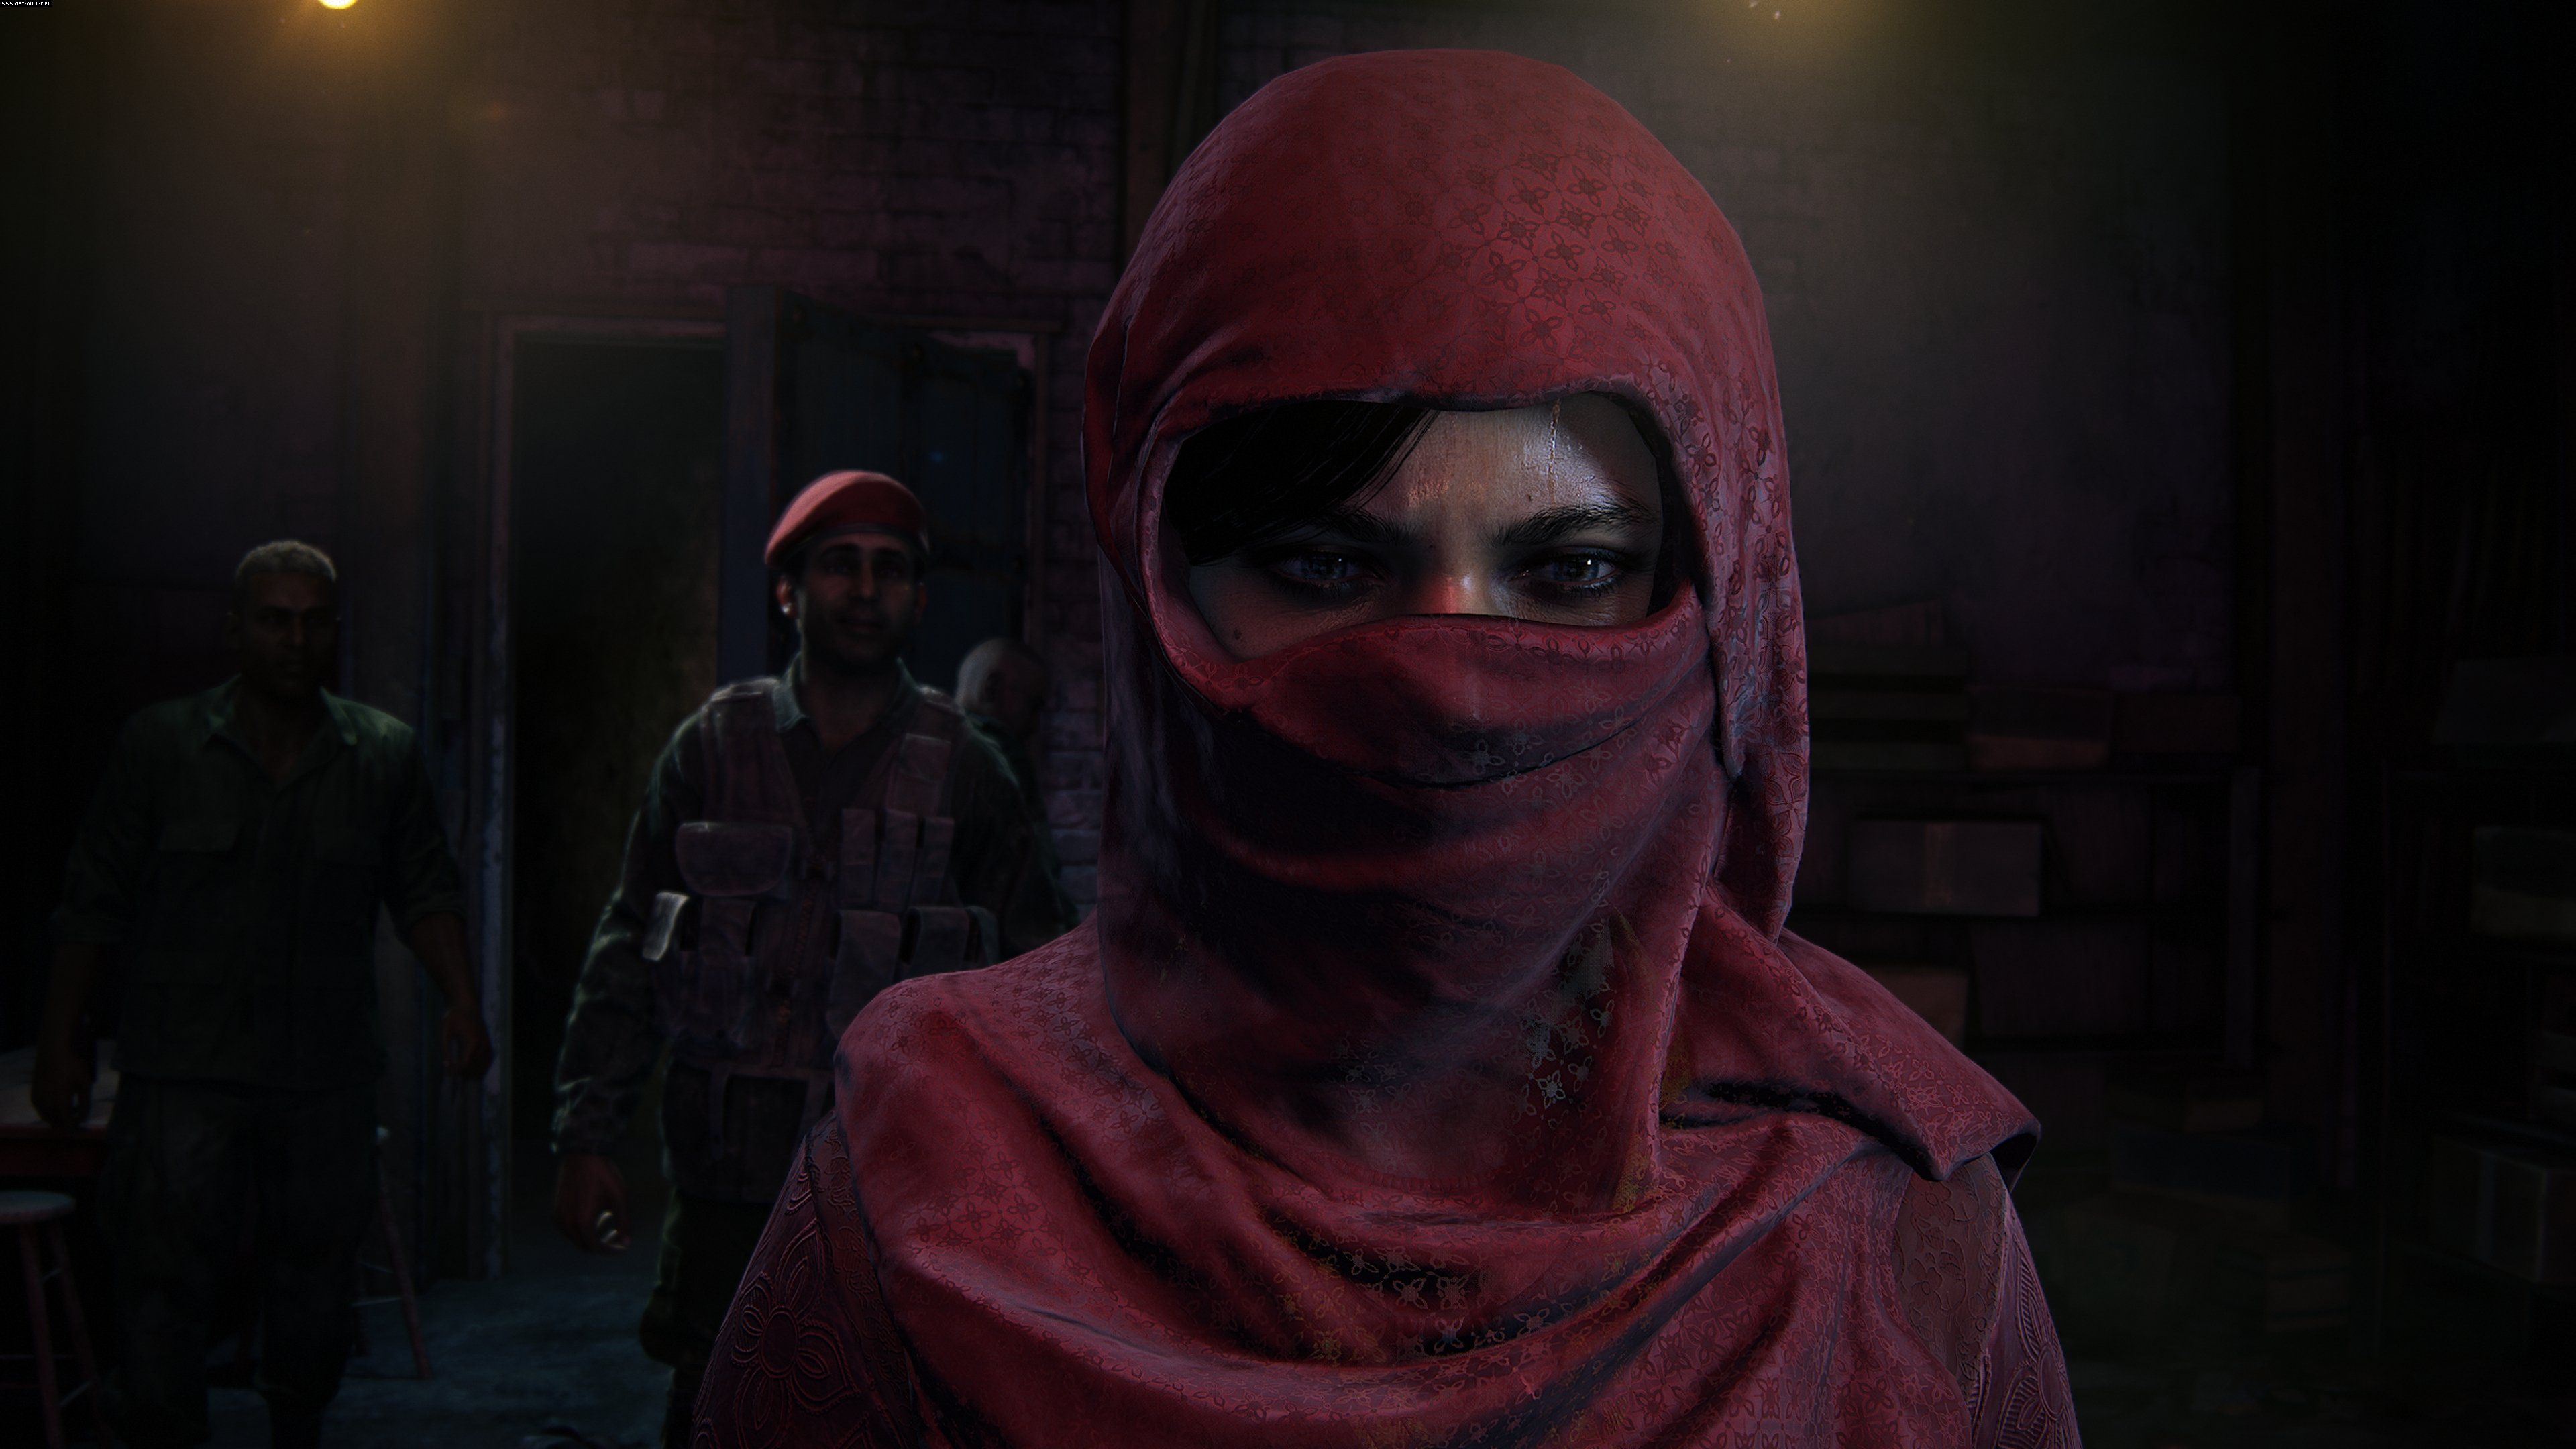 Uncharted: The Lost Legacy PS4 Games Image 139/141, Naughty Dog, Sony Interactive Entertainment